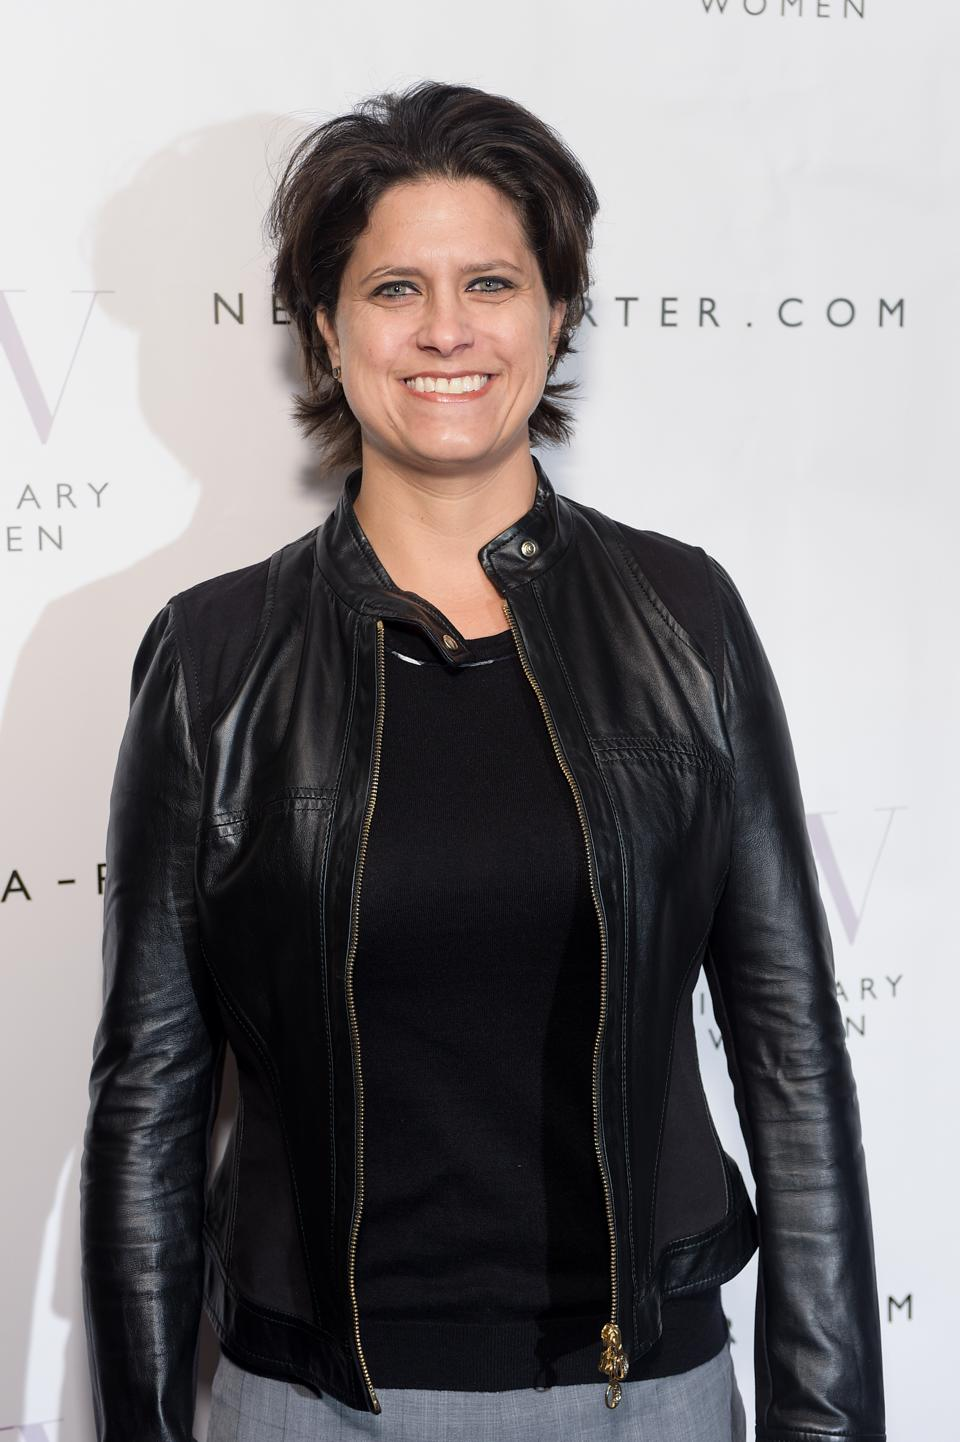 The new women's soccer team, Angel City FC, was founded by Julie Uhrman.